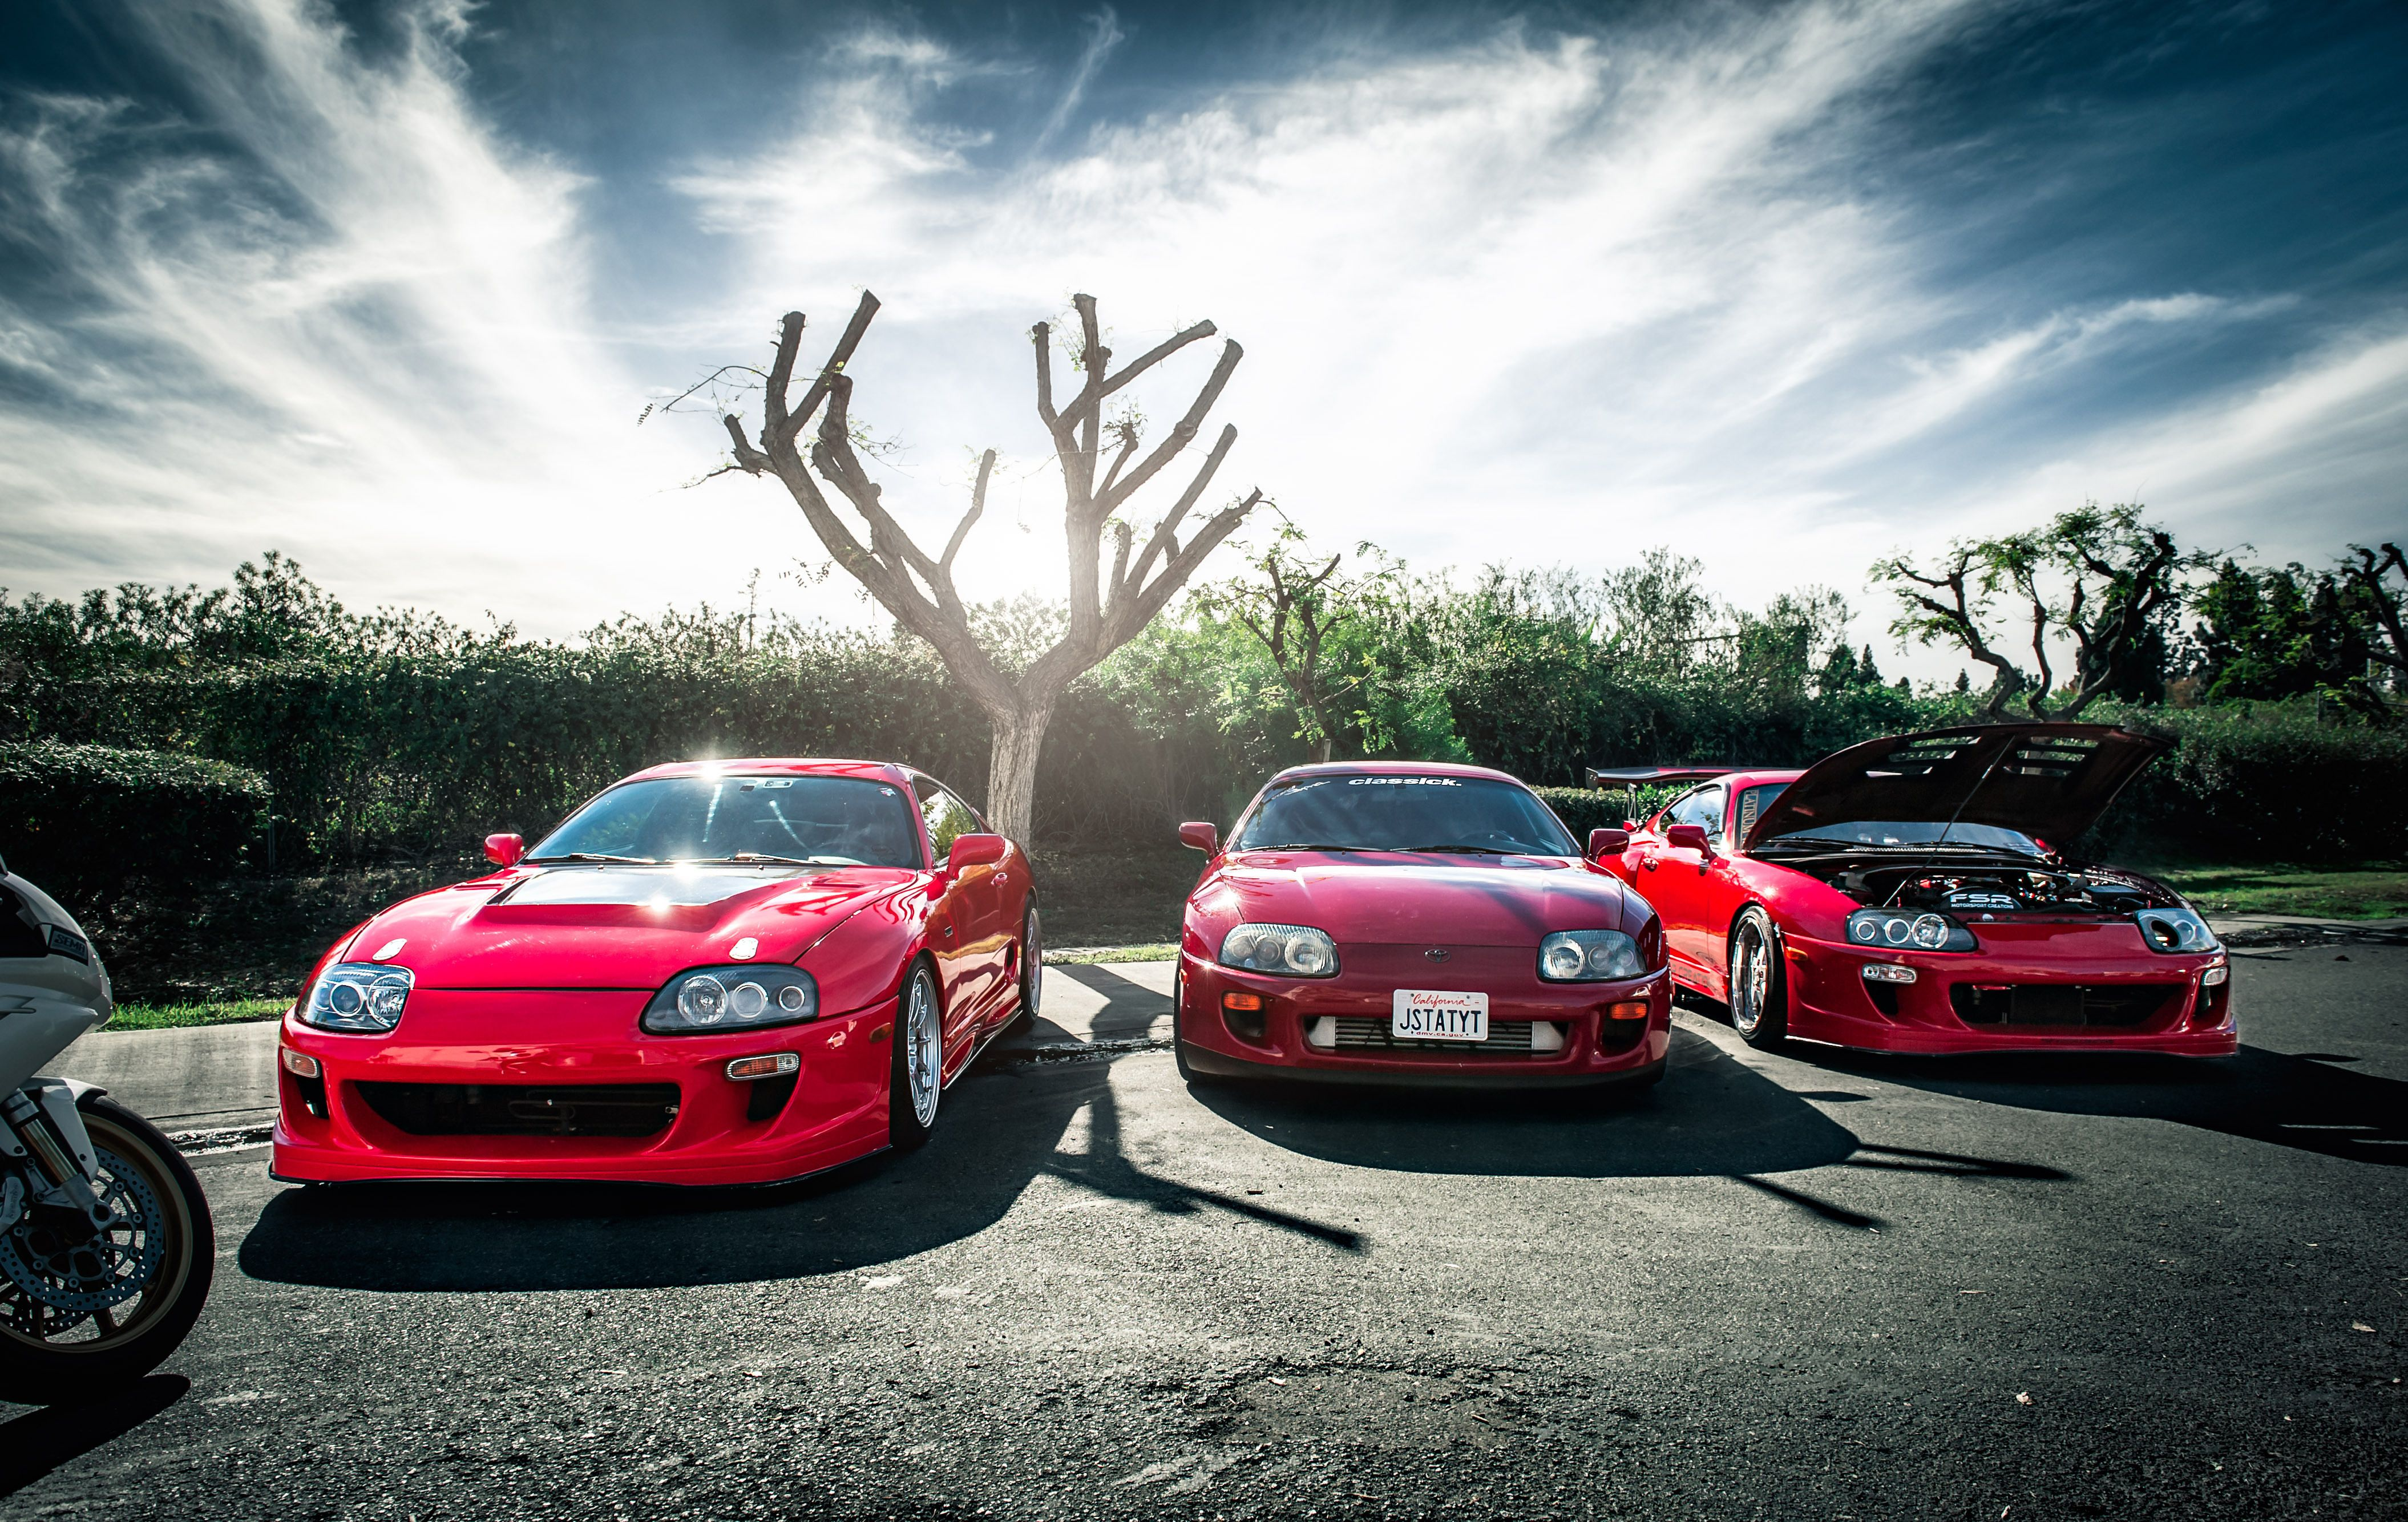 Toyota Supra Wallpapers, Pictures, Image